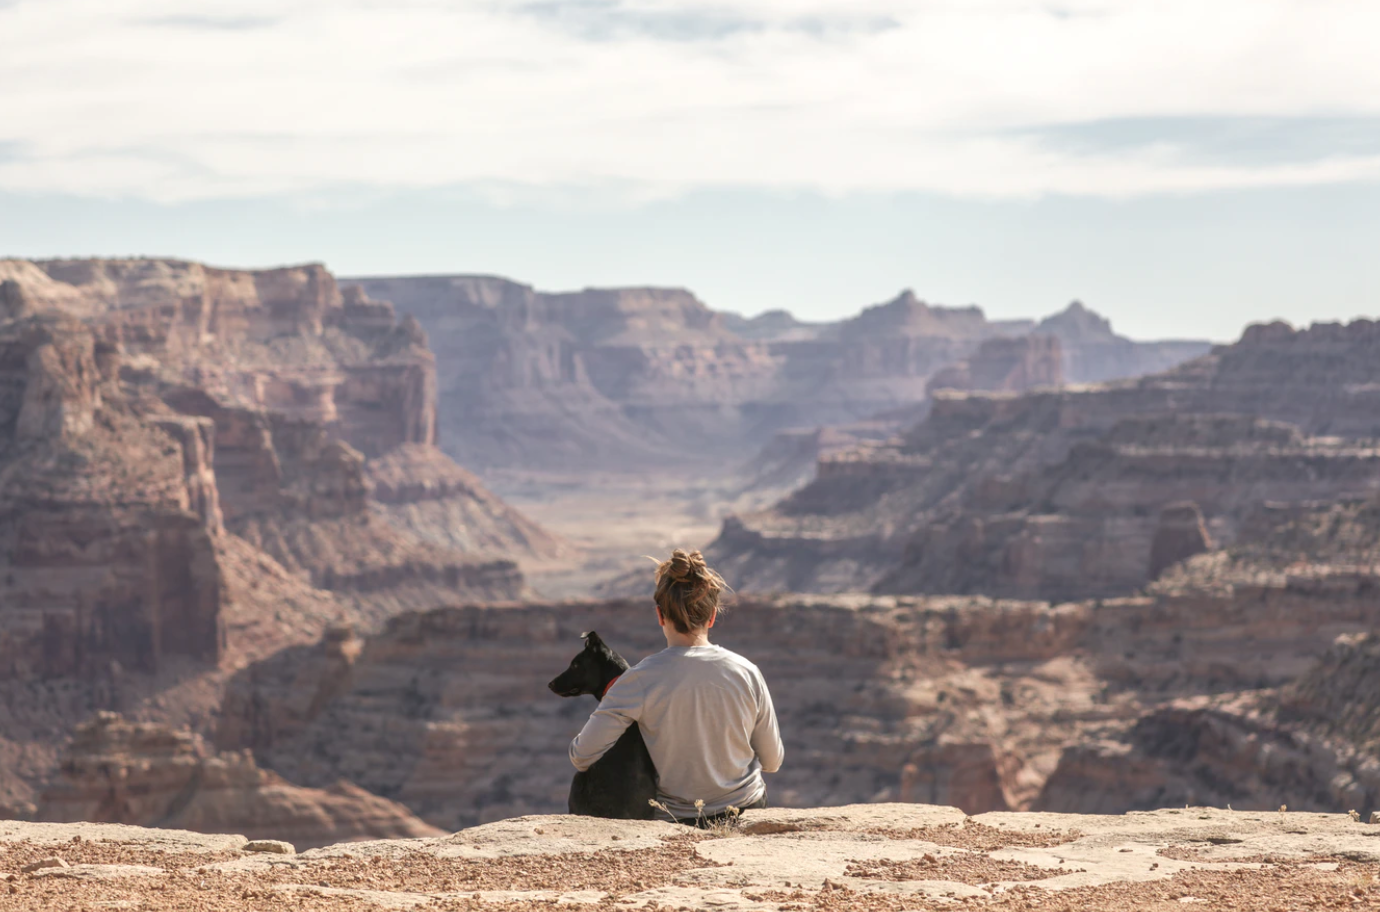 Man and dog overlooking canyon; image by Patrick Hendry, via Unsplash.com.